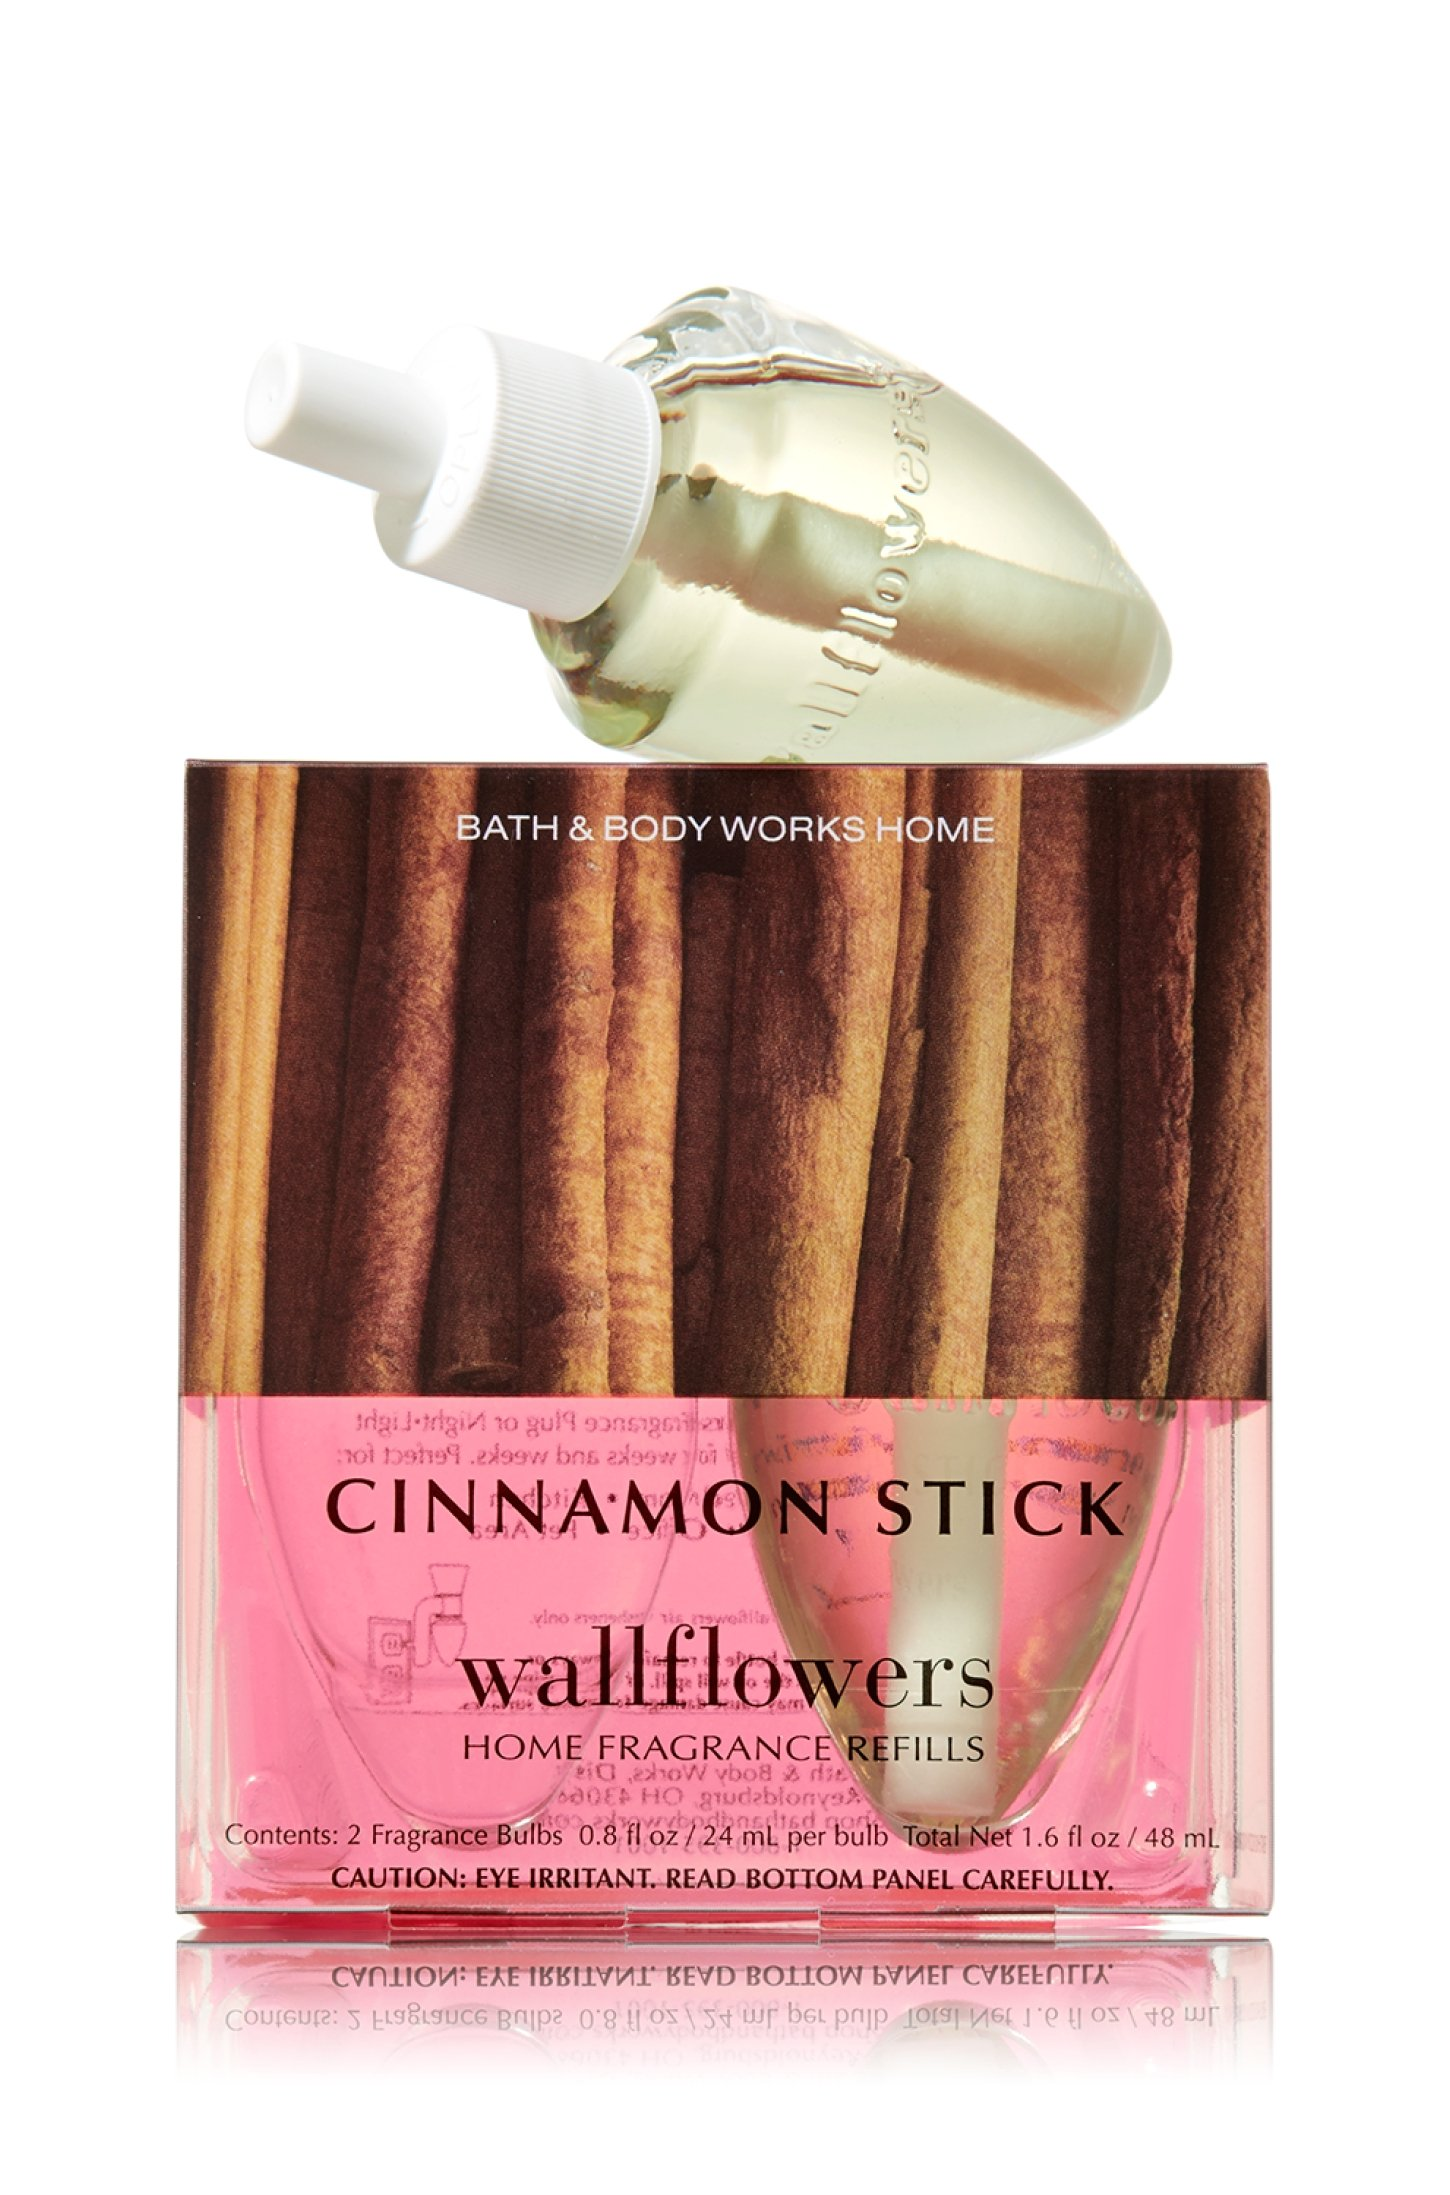 Bath and Body Works Cinnamon Stick Wallflowers 2-Pack Home Fragrance Refills, 1.6 Ounce Total